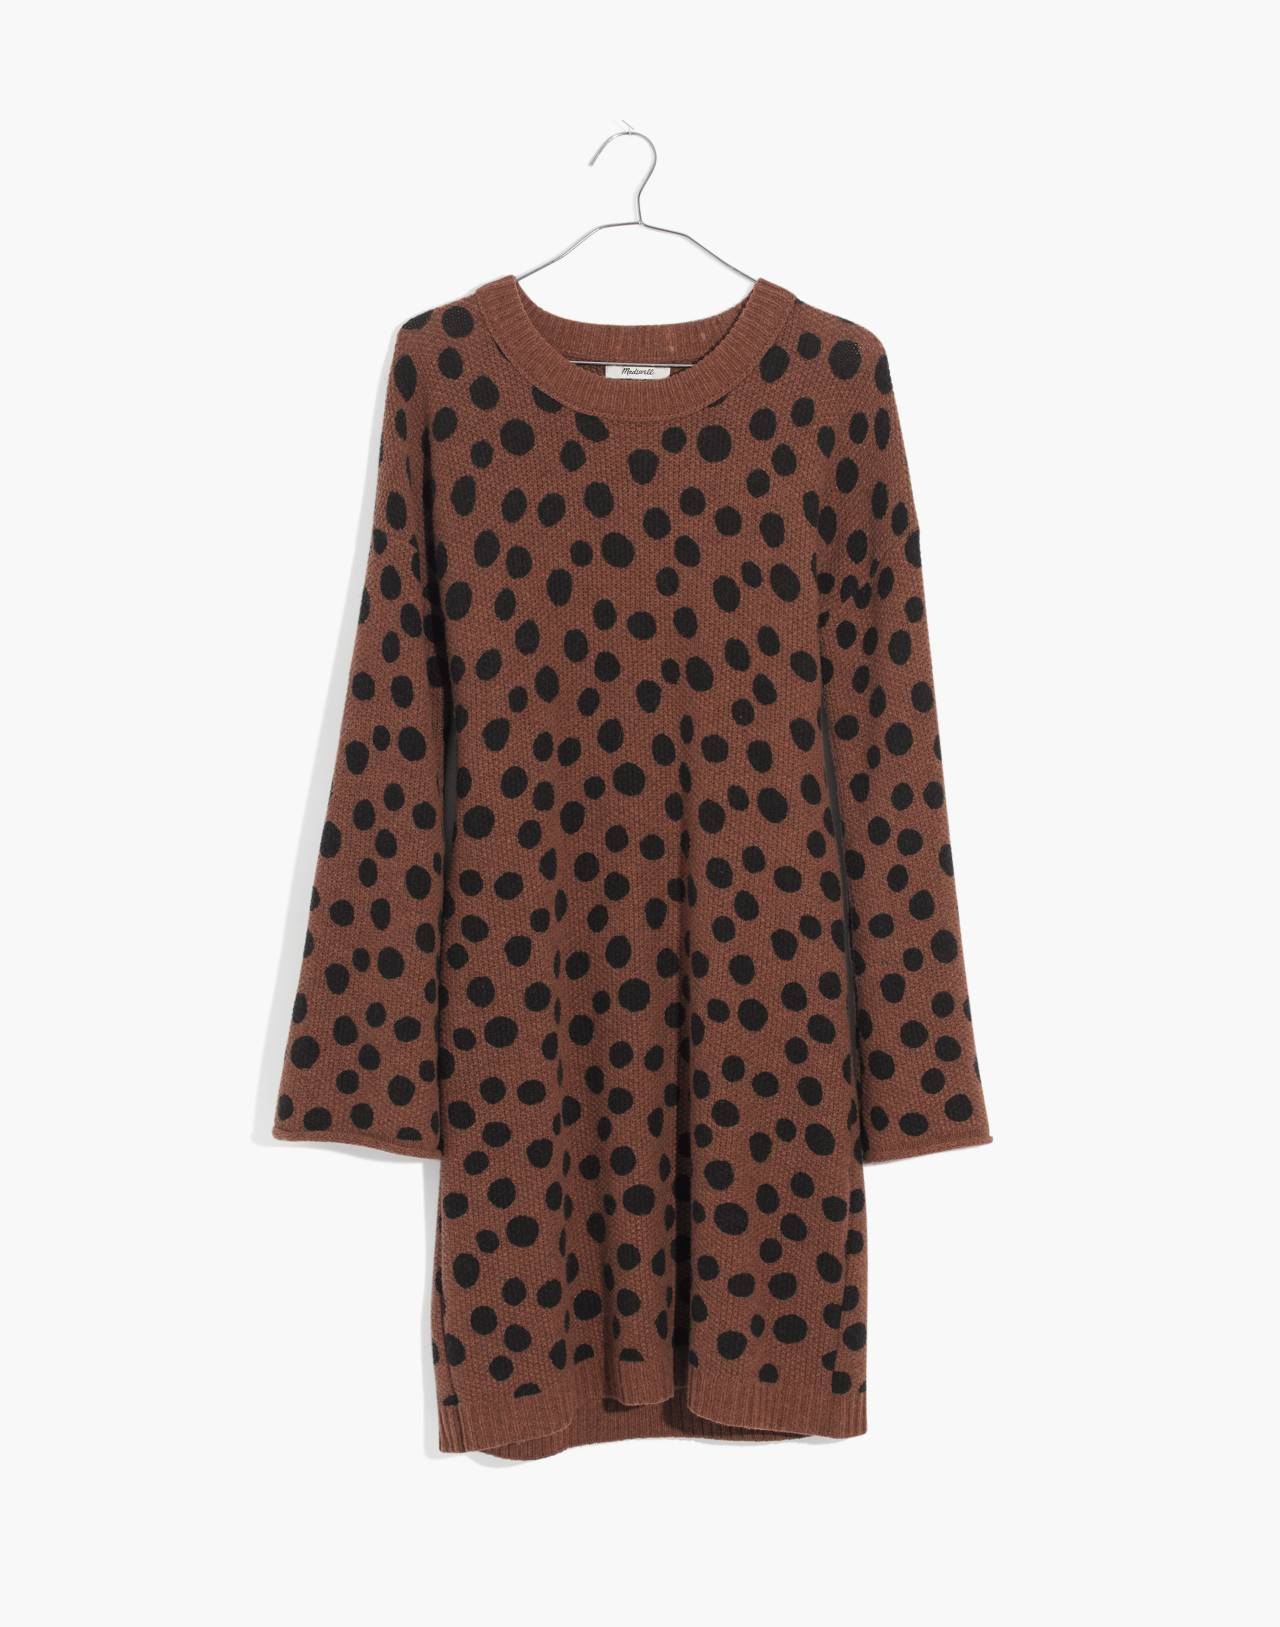 Leopard Dot Sweater-Dress in heather reindeer image 4